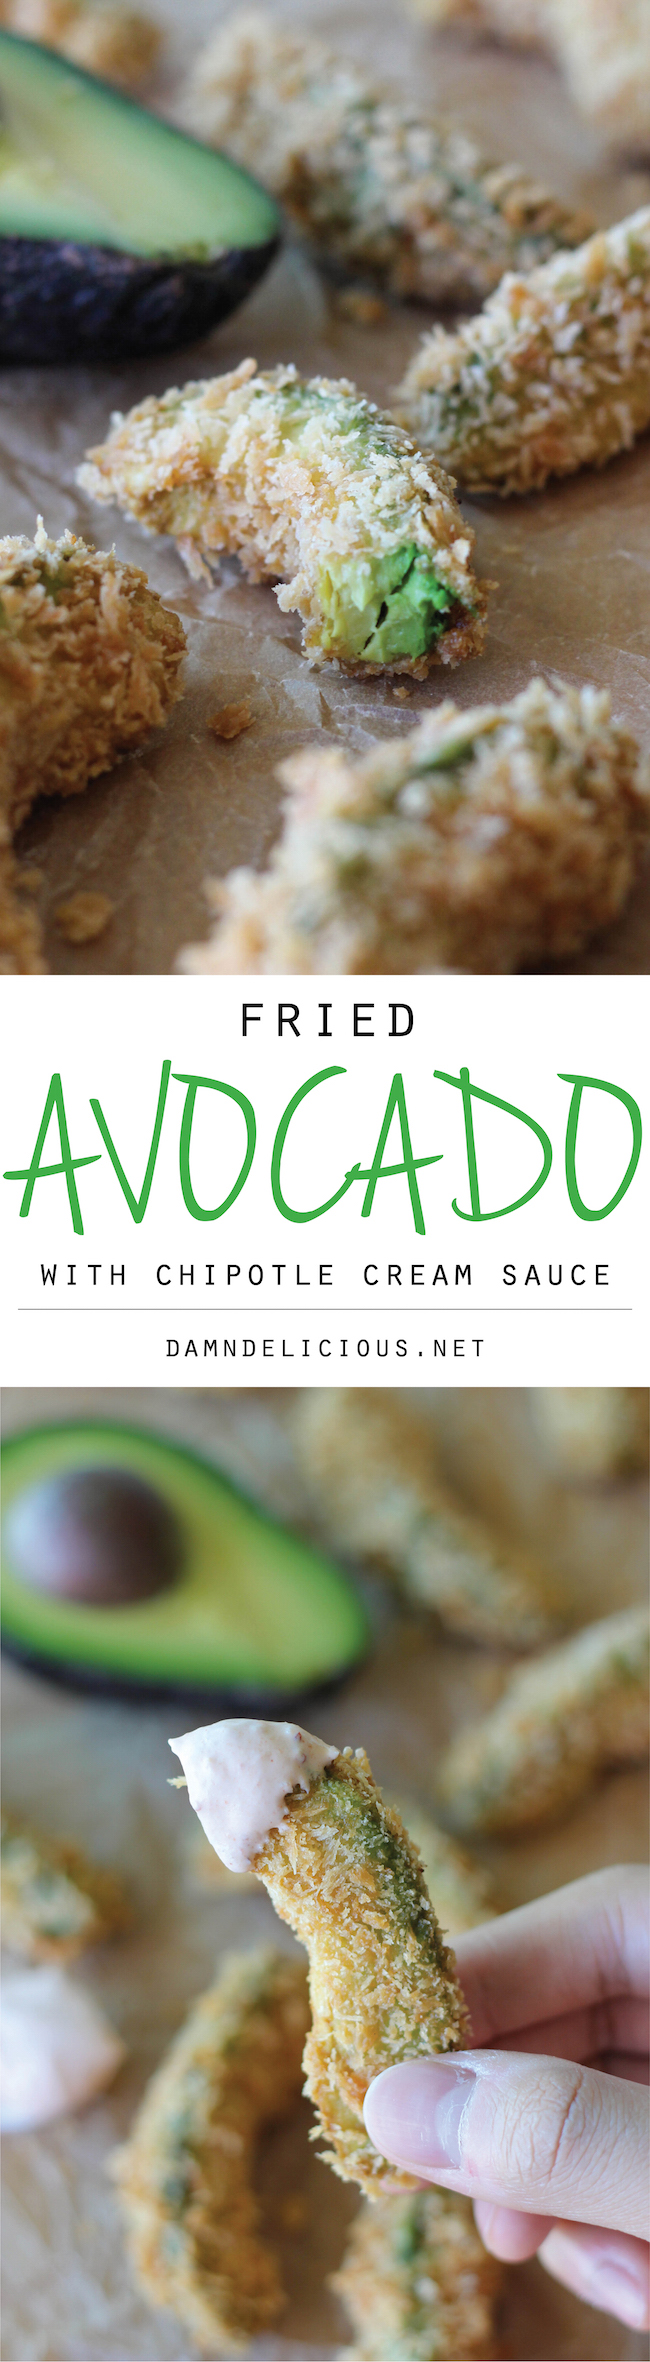 Fried Avocado with Chipotle Cream Sauce - The only way to eat an avocado is when they're deep fried!